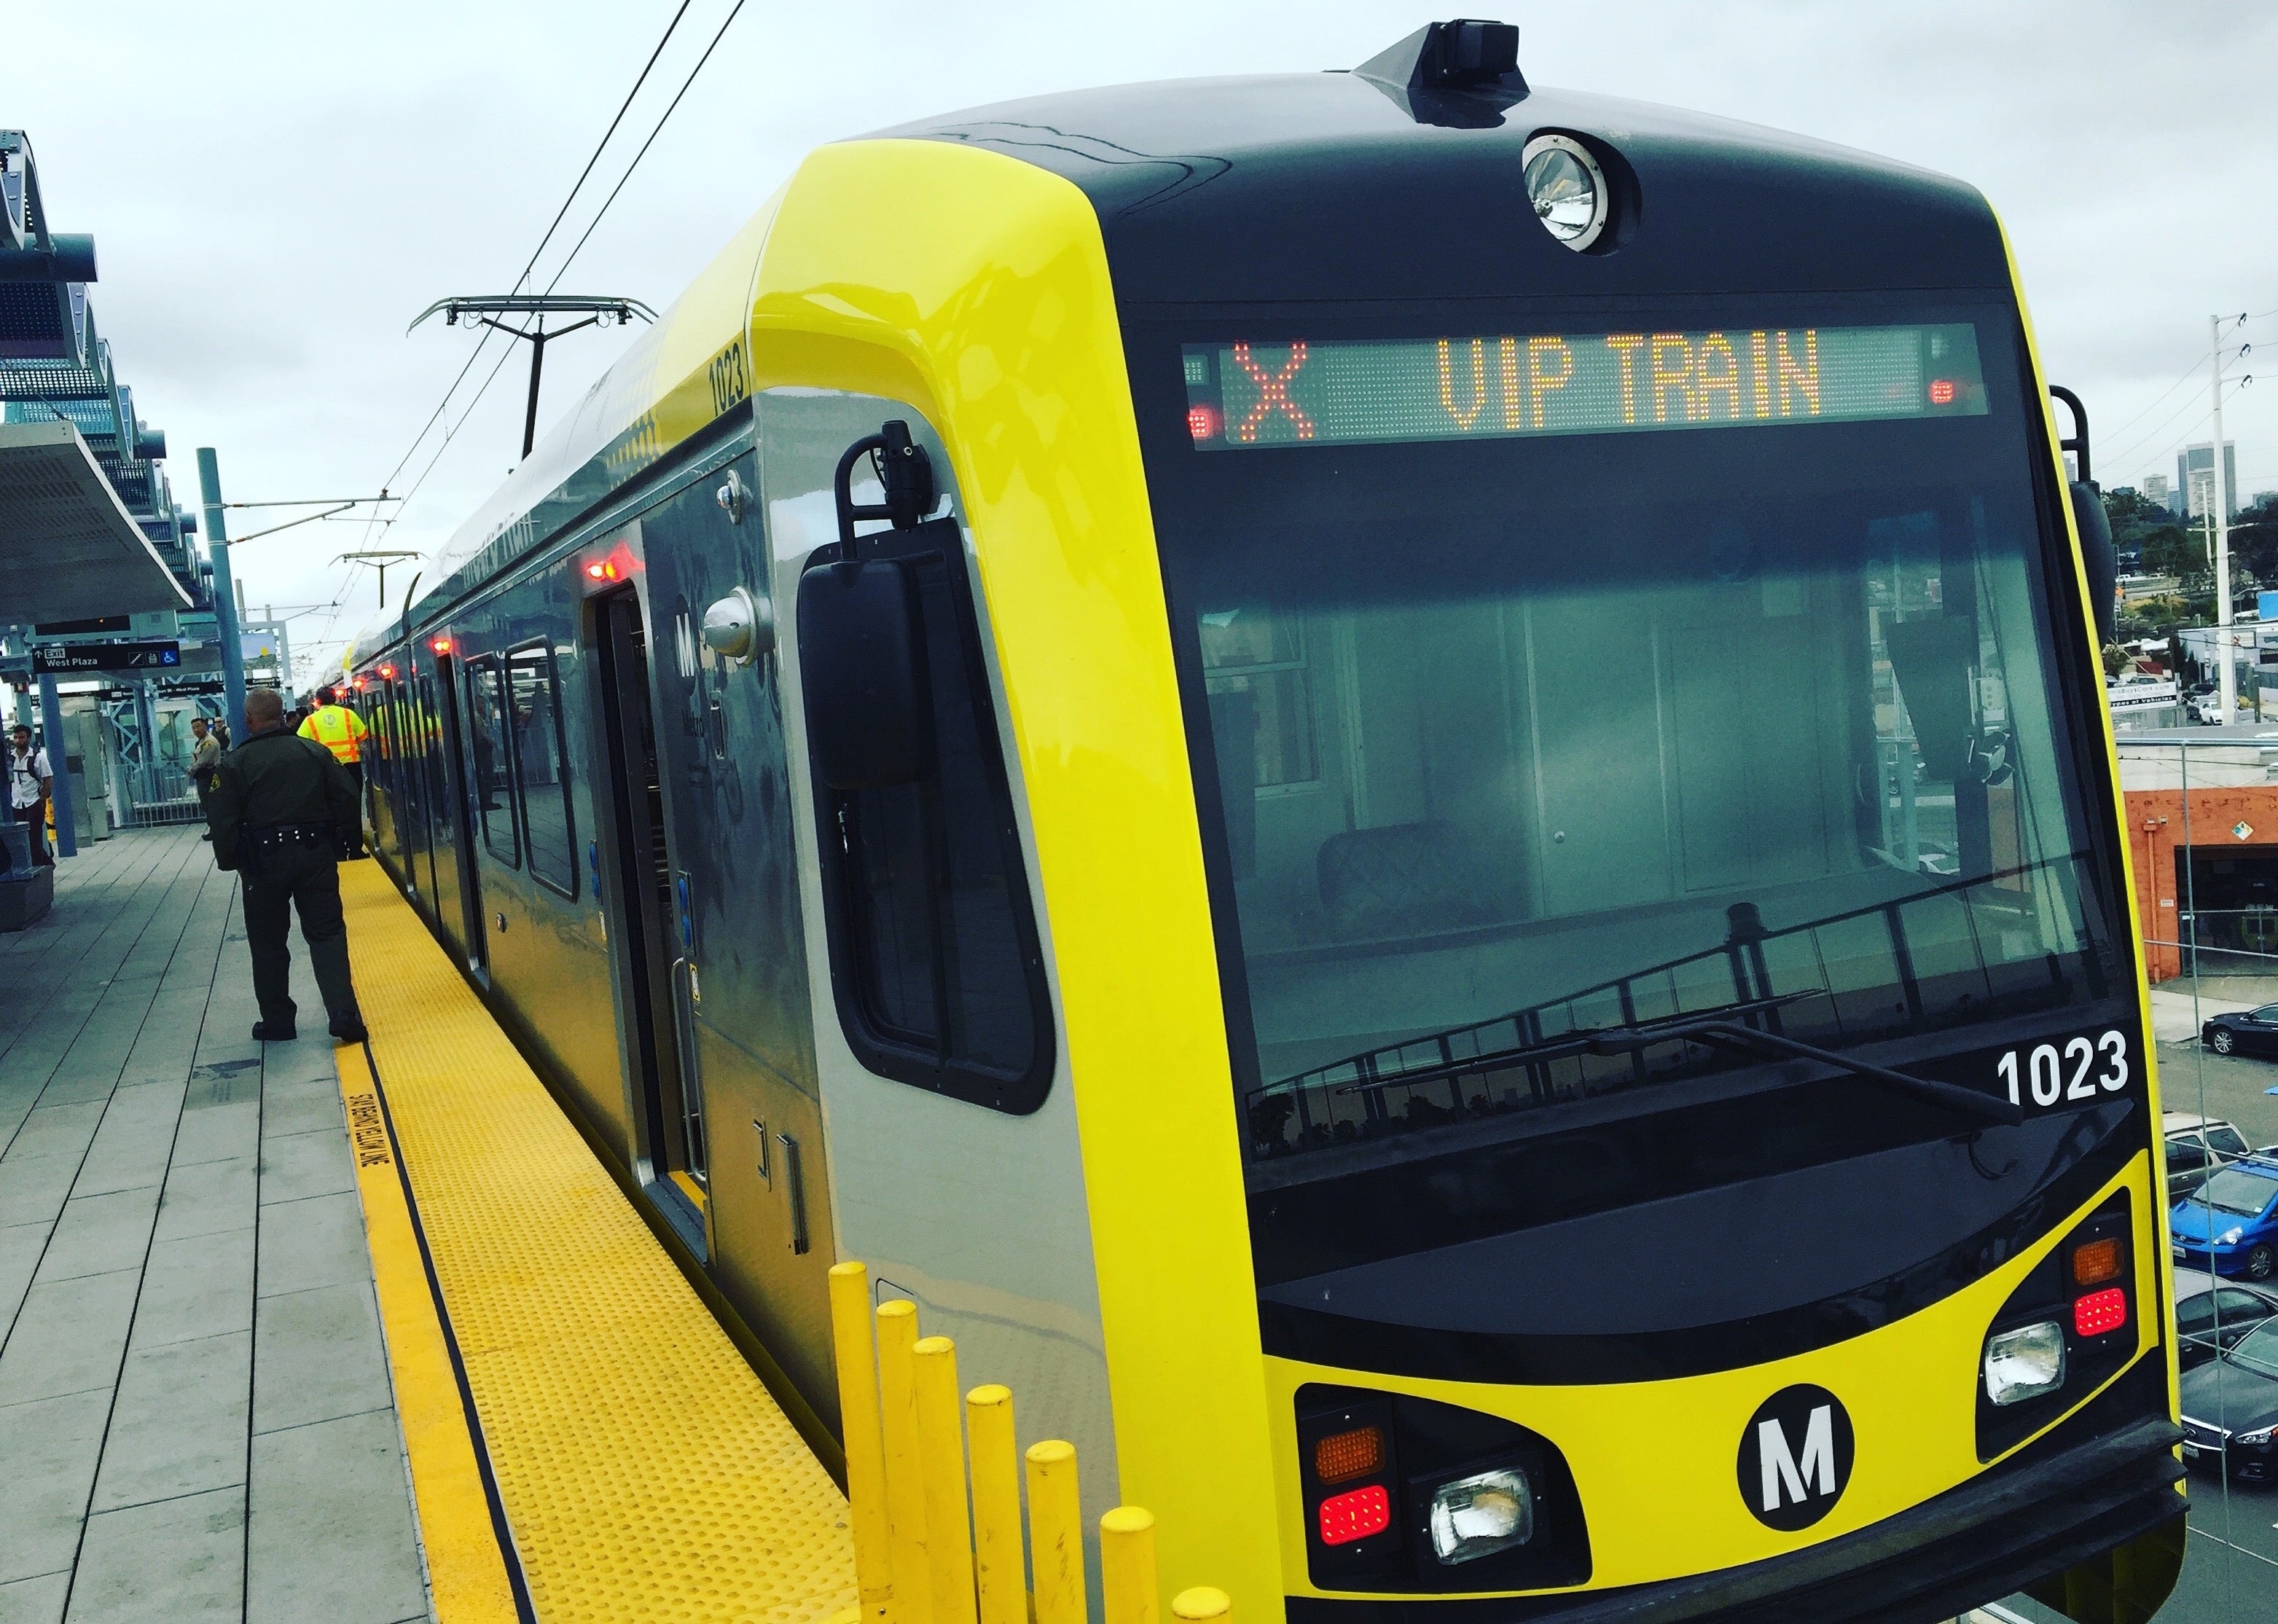 Watch the First Passenger Train to Travel from Downtown LA to Santa Monica in 60 Years